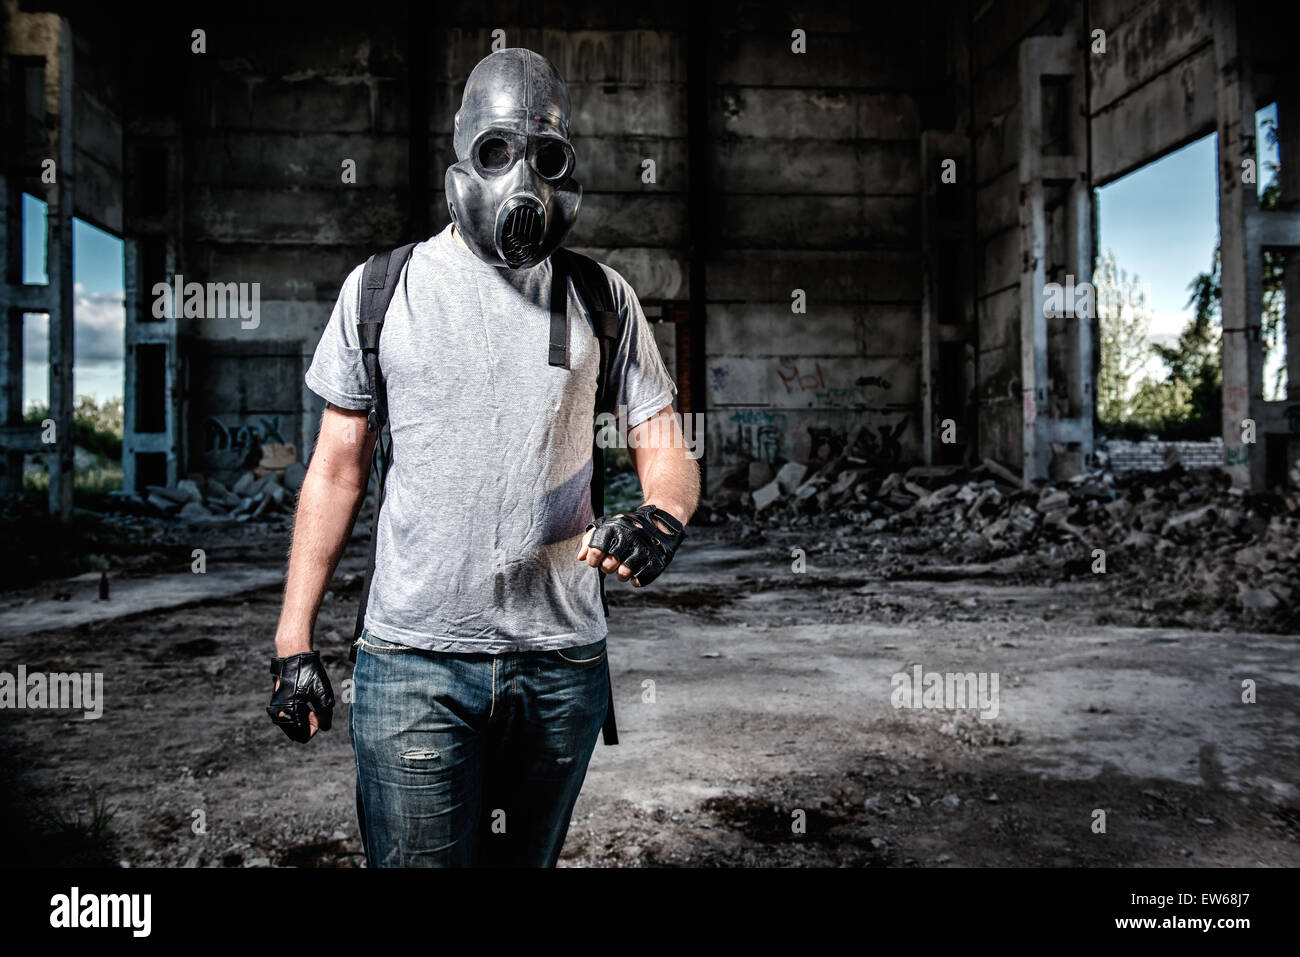 Mann in Gas Mask Stockbild